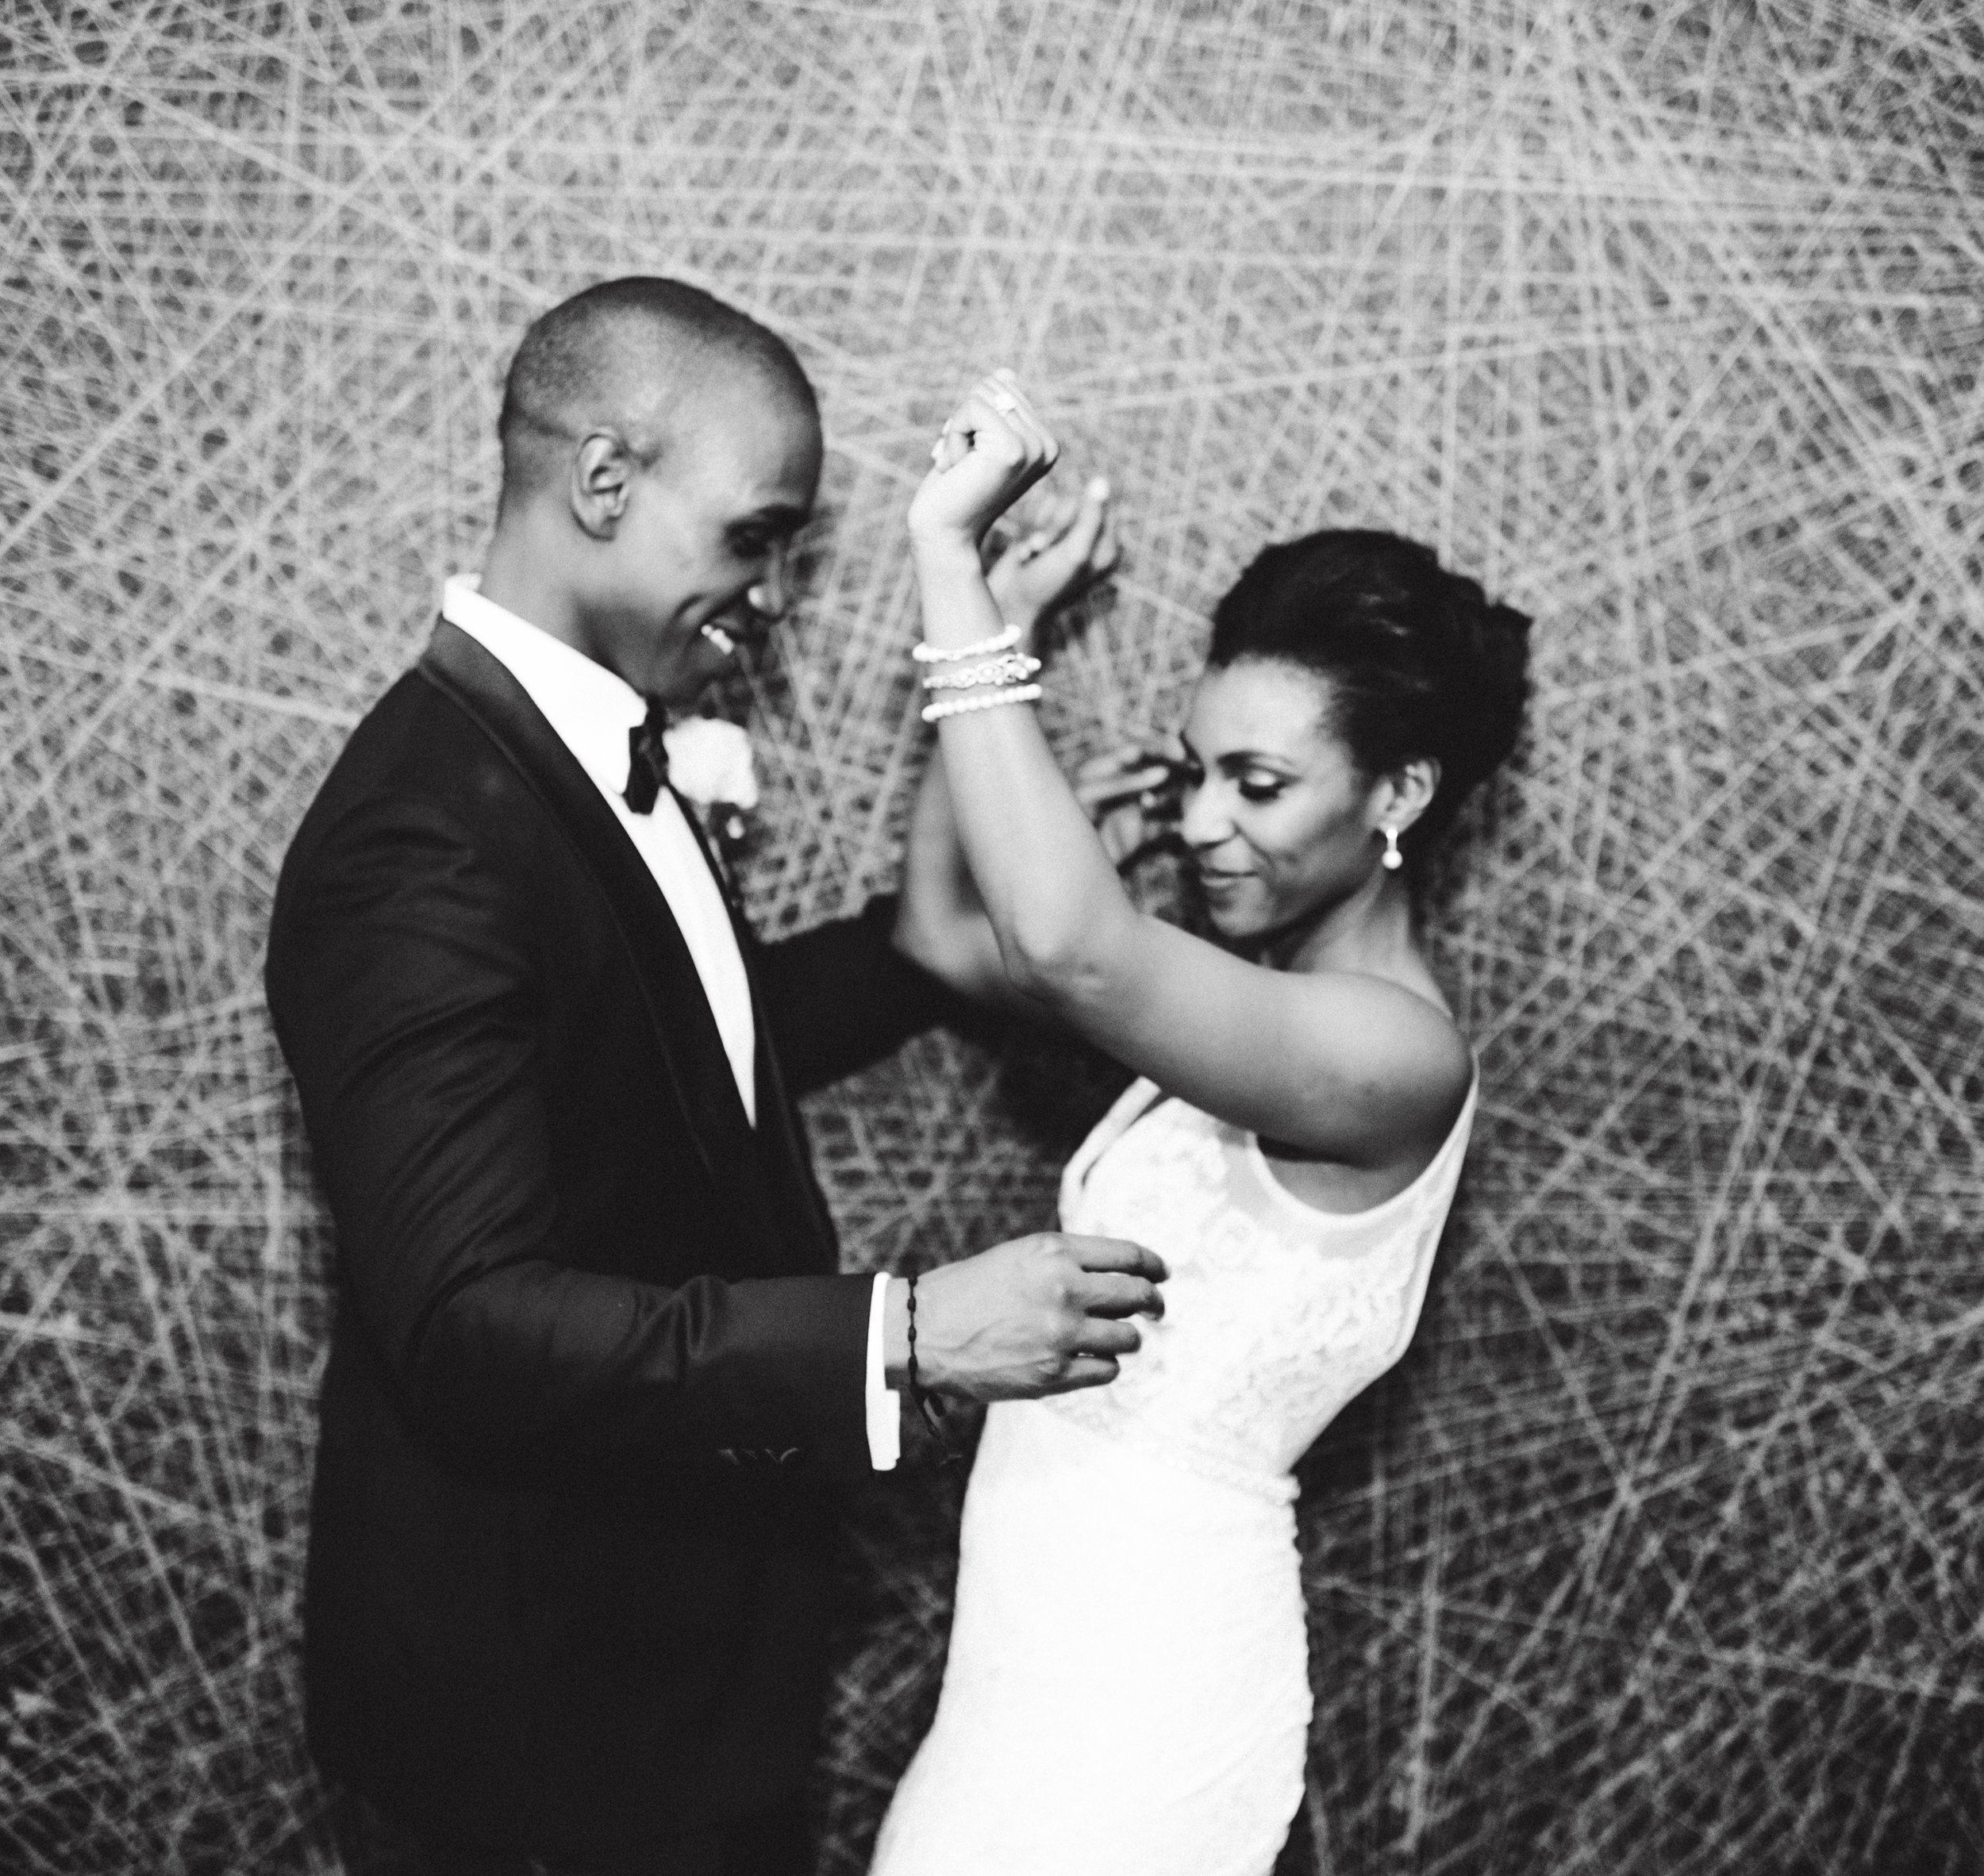 DANIELLE & BRANDON WEDDING - HEDGE ART GALLERY - NYC INTIMATE WEDDING PHOTOGRAPHER - CHI-CHI ARI-512.jpg